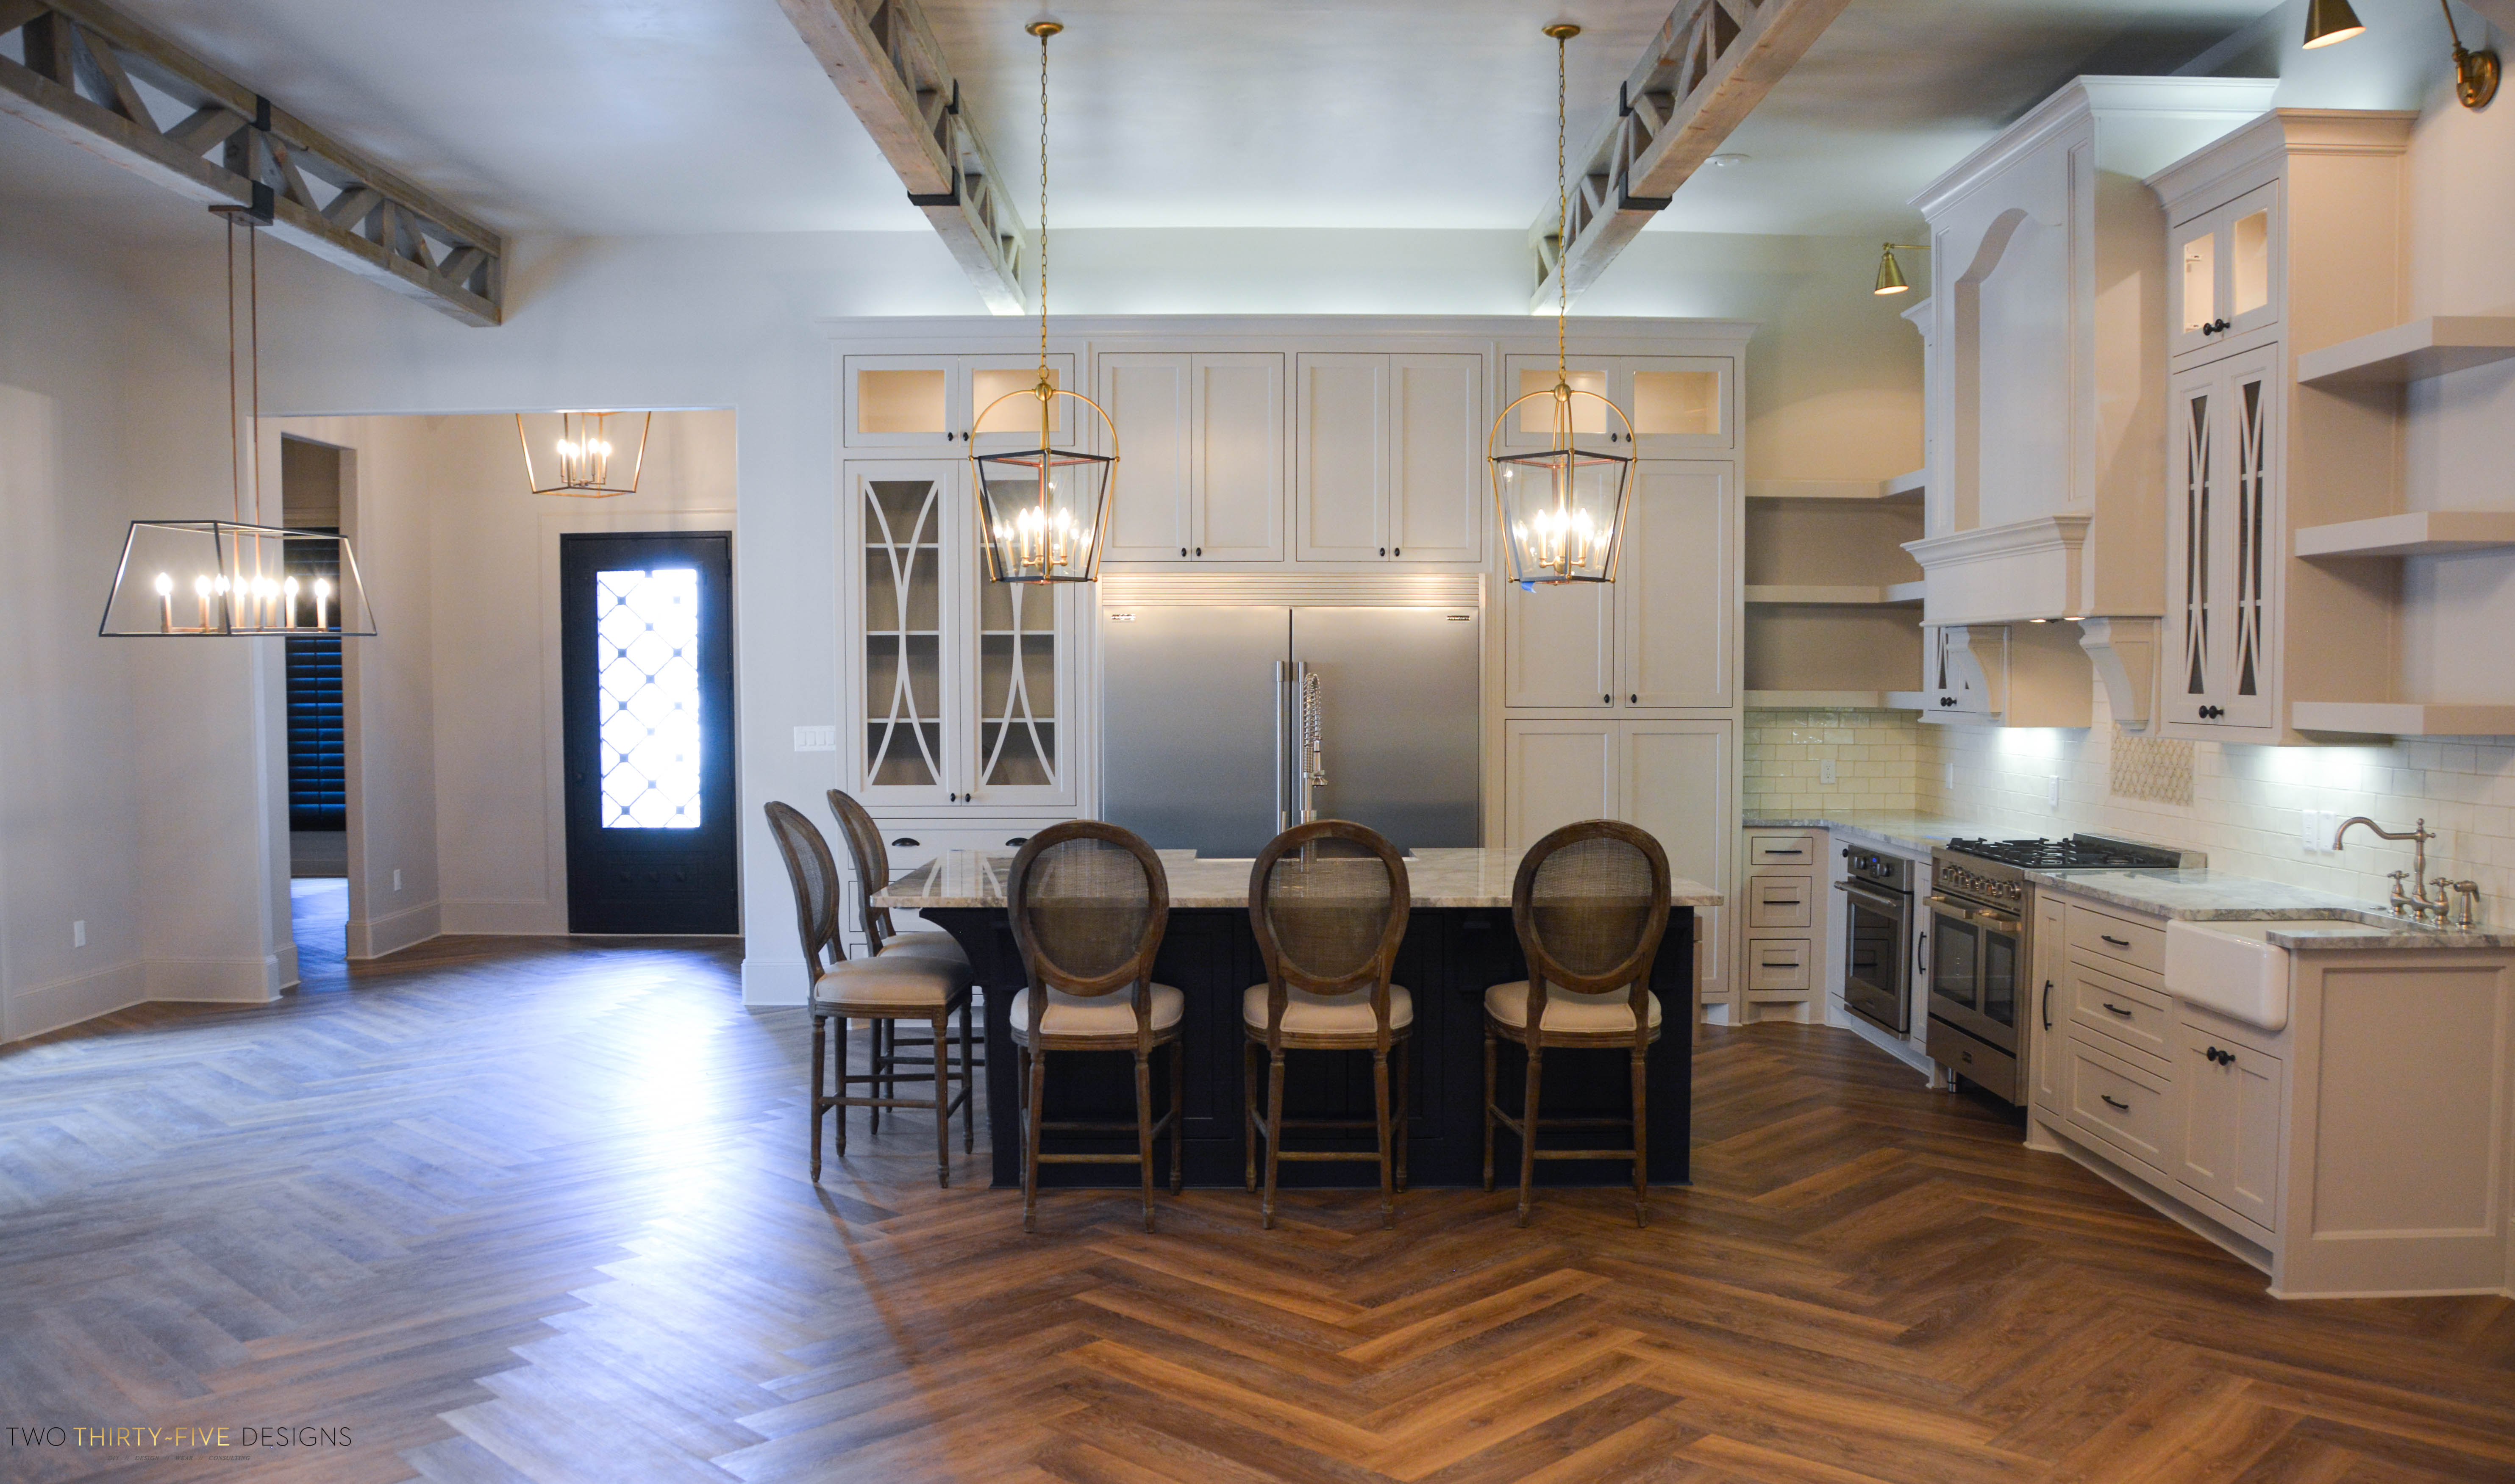 ... Rustic French Kitchen By Two Thirty Five Designs 4 ...